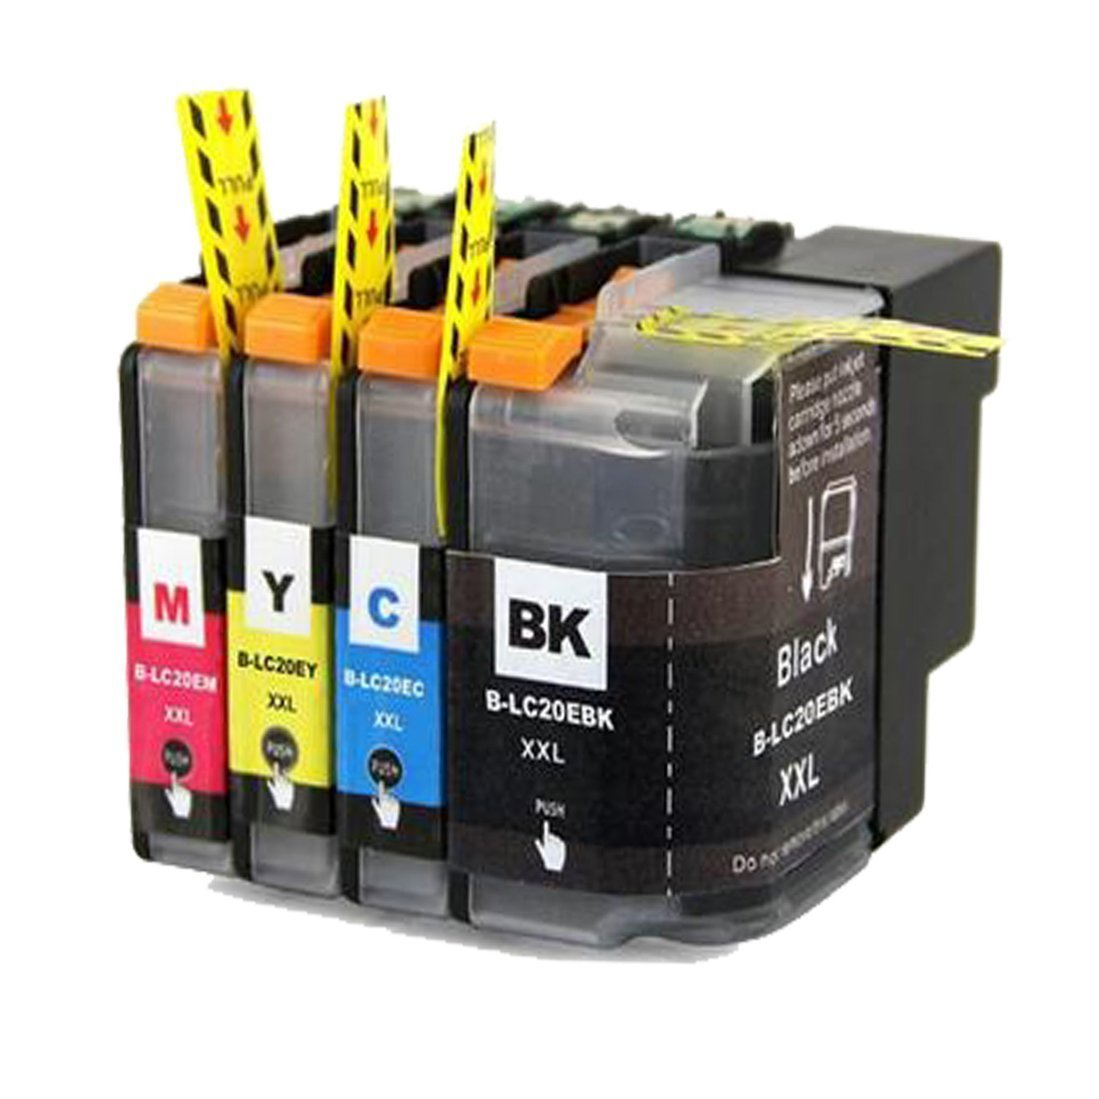 Aprobu Replacement for Brother LC20E XXL Super High Yield Ink Cartridge Set(4-Pack,1 Black/1 Cyan/1 Magenta/1 Yellow) with MFC-J5920DW MFC-J985DW Pinter